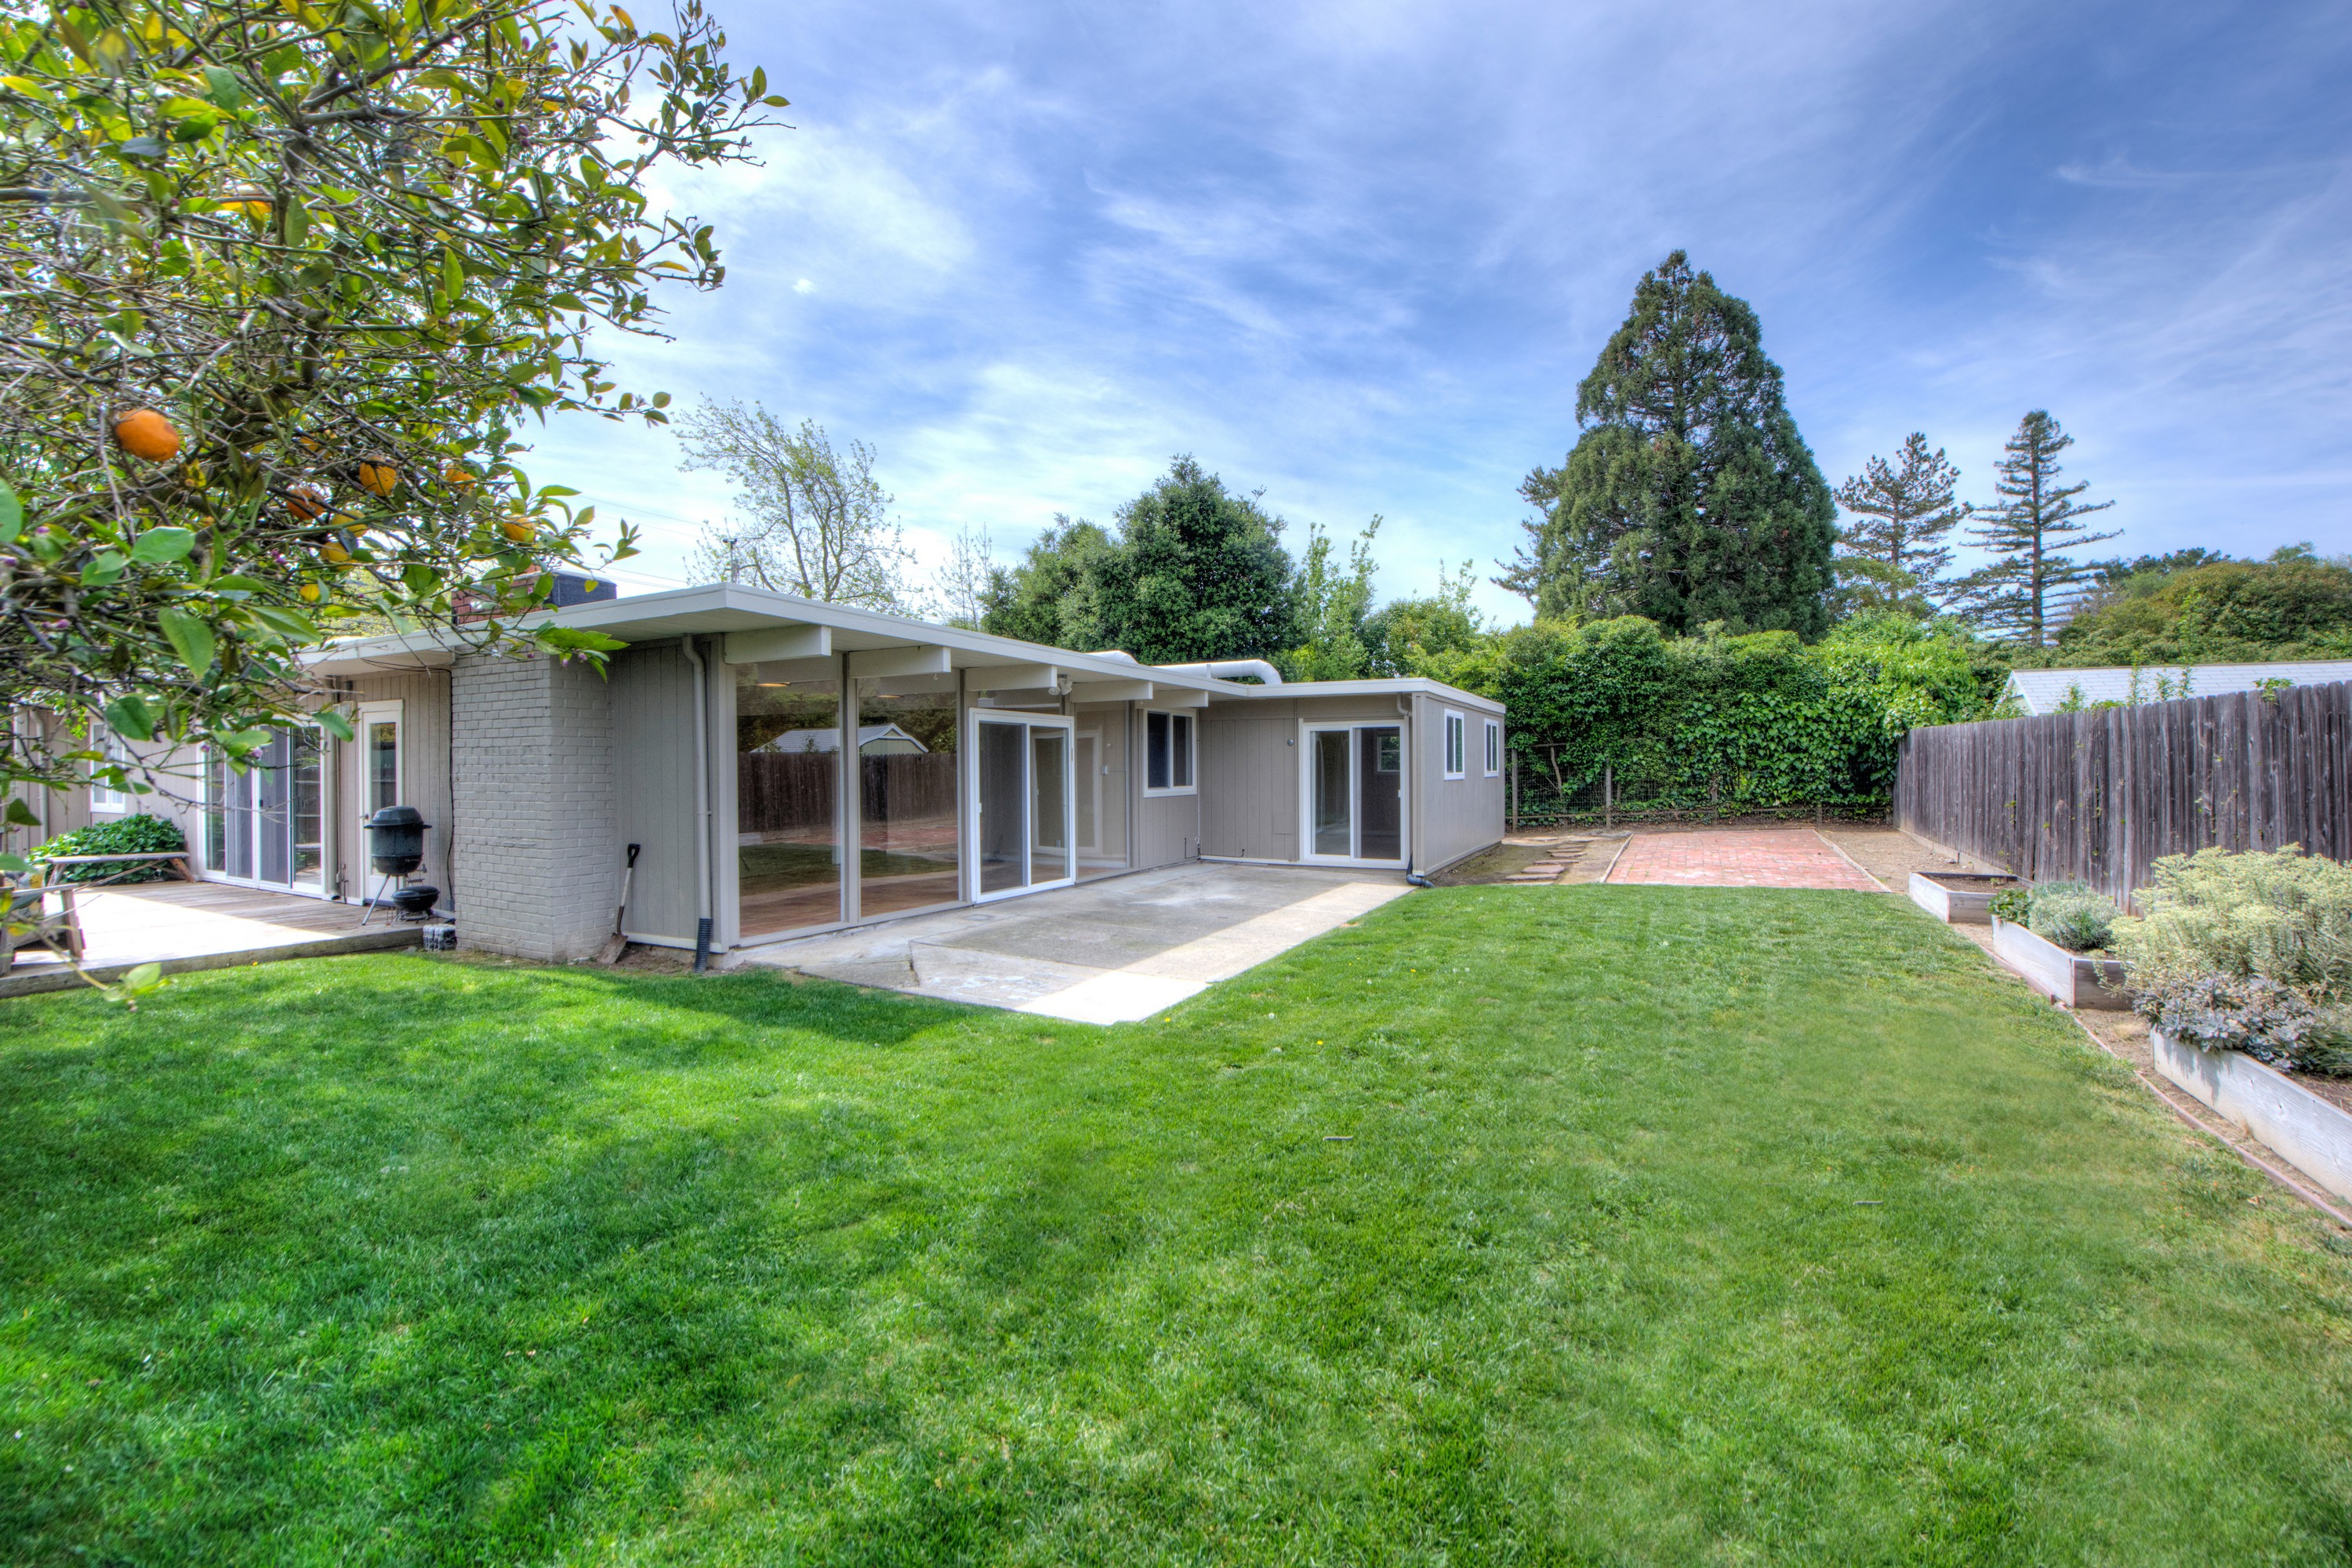 """Single Family Home for Sale at Lucas Valley """"Eichler"""" With Panoramic Views! 630 Appleberry Drive San Rafael, California, 94903 United States"""